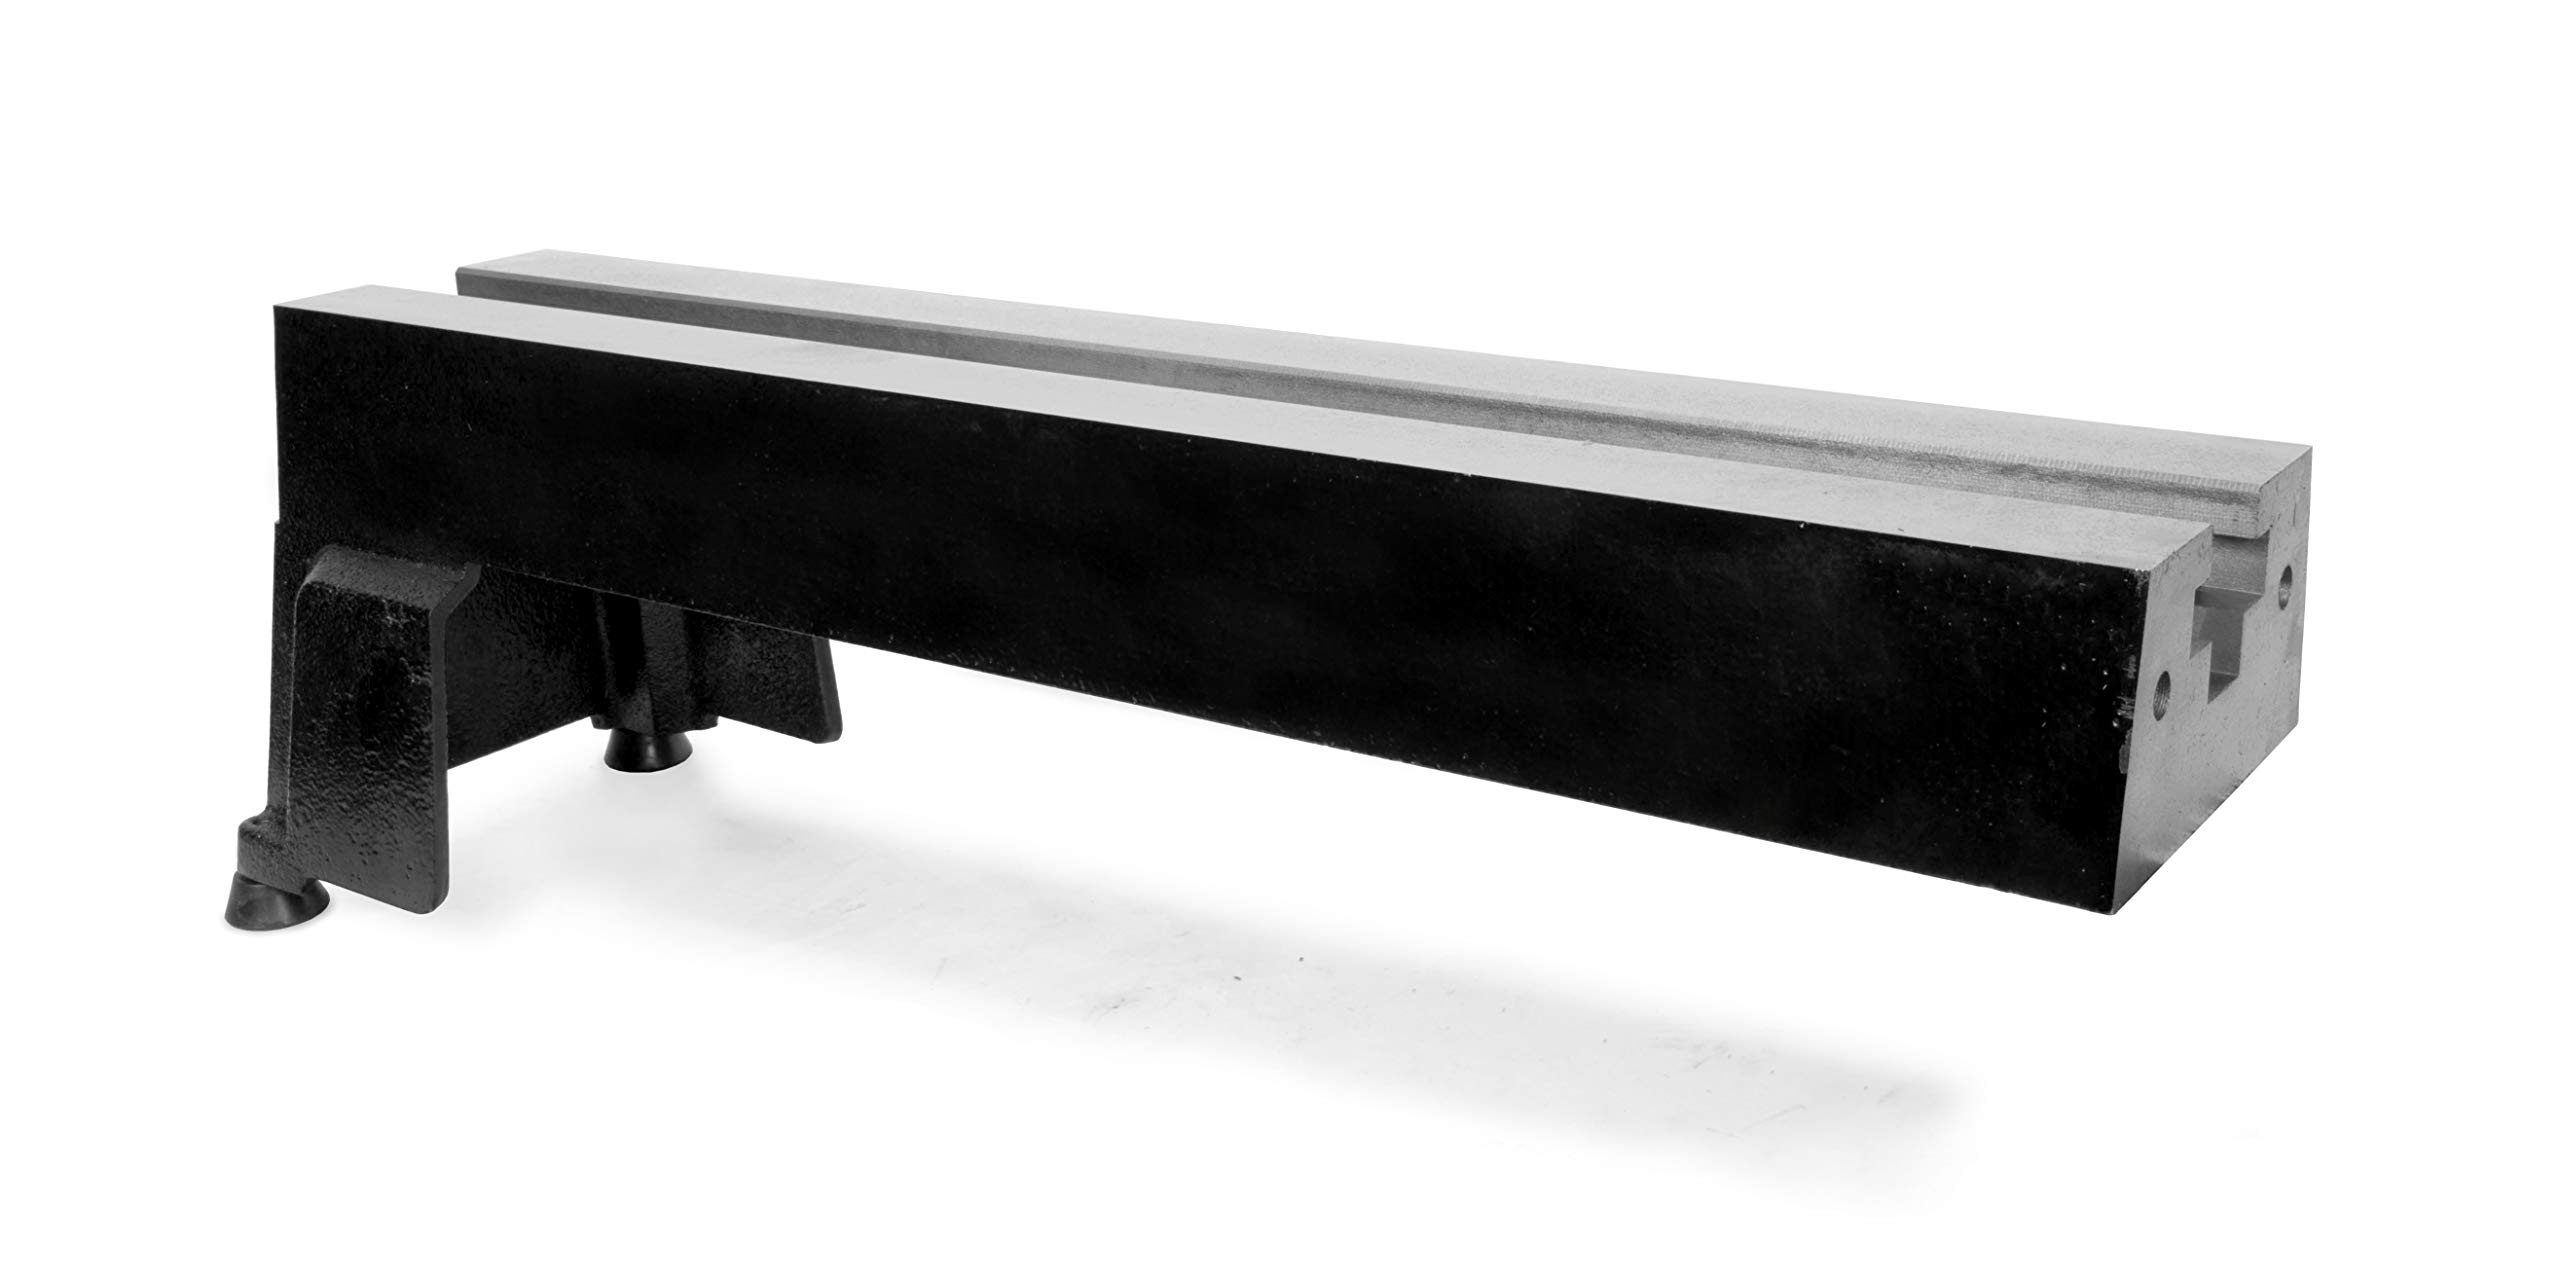 WEN 3424EX 23-Inch Cast Iron Wood Lathe Bed Extension for 12 by 18-Inch WEN Lathes